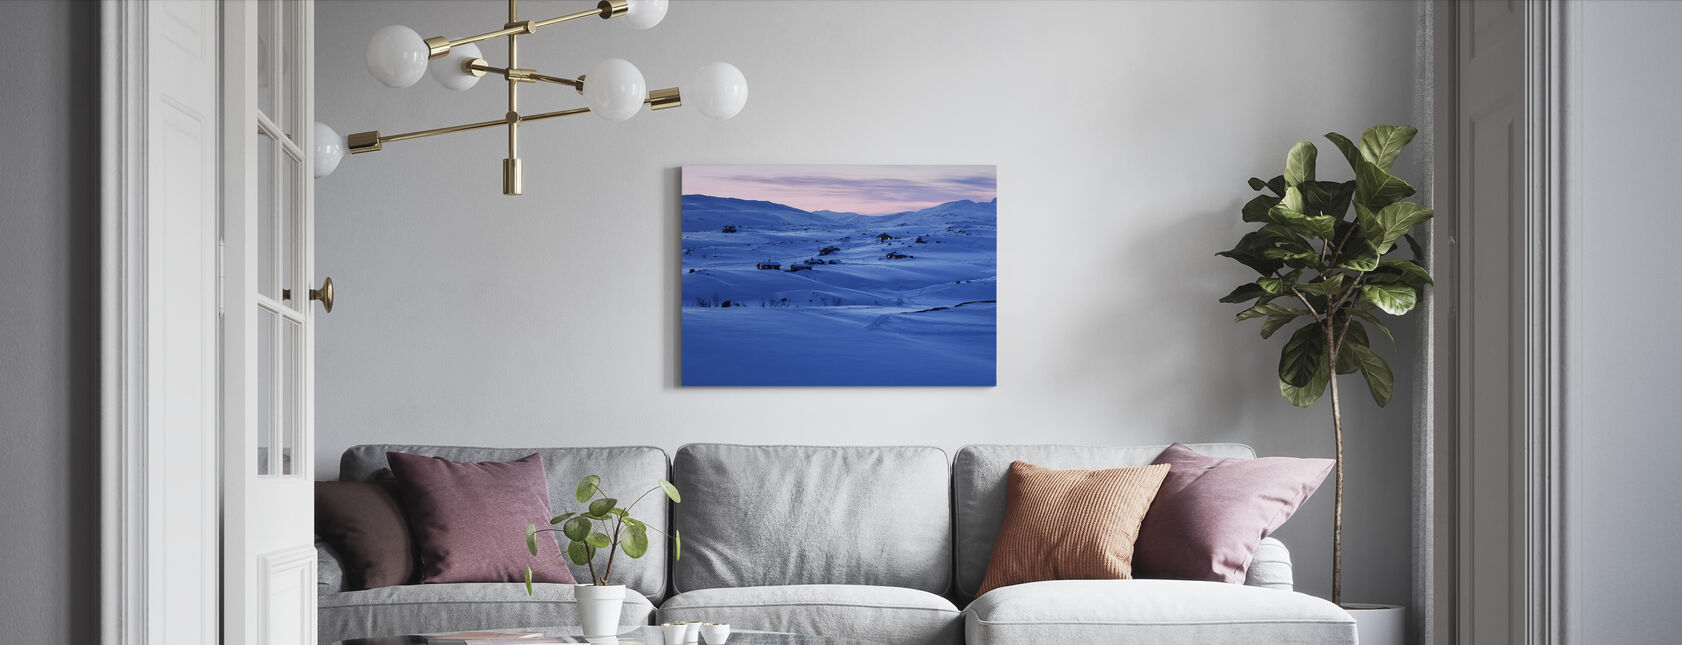 Swedish Lapland - Canvas print - Living Room